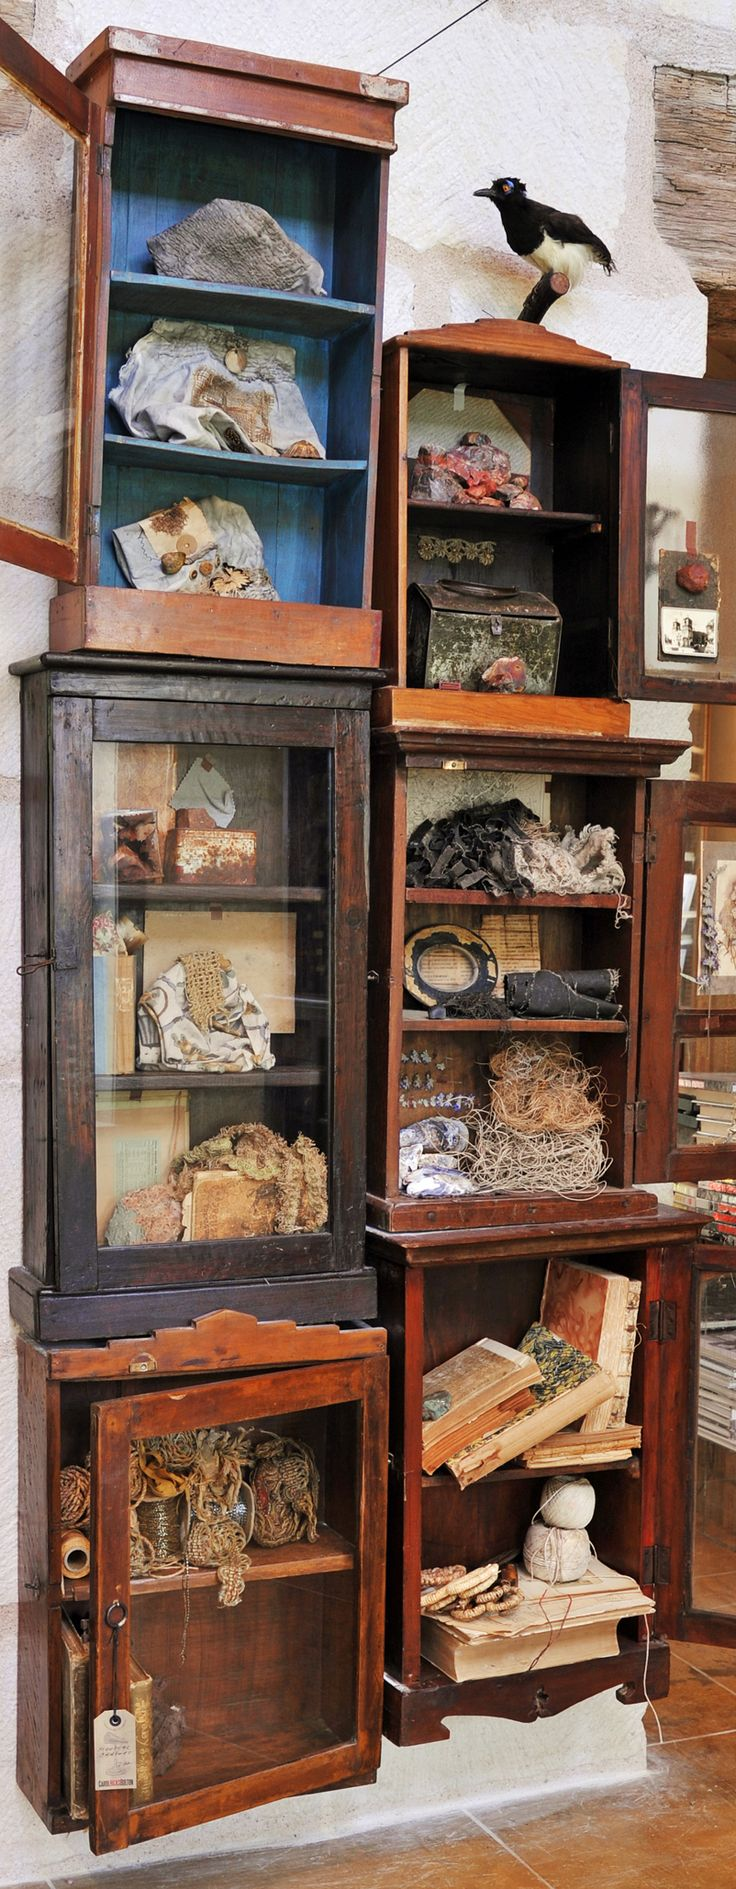 best collections images on pinterest cabinets crystals and